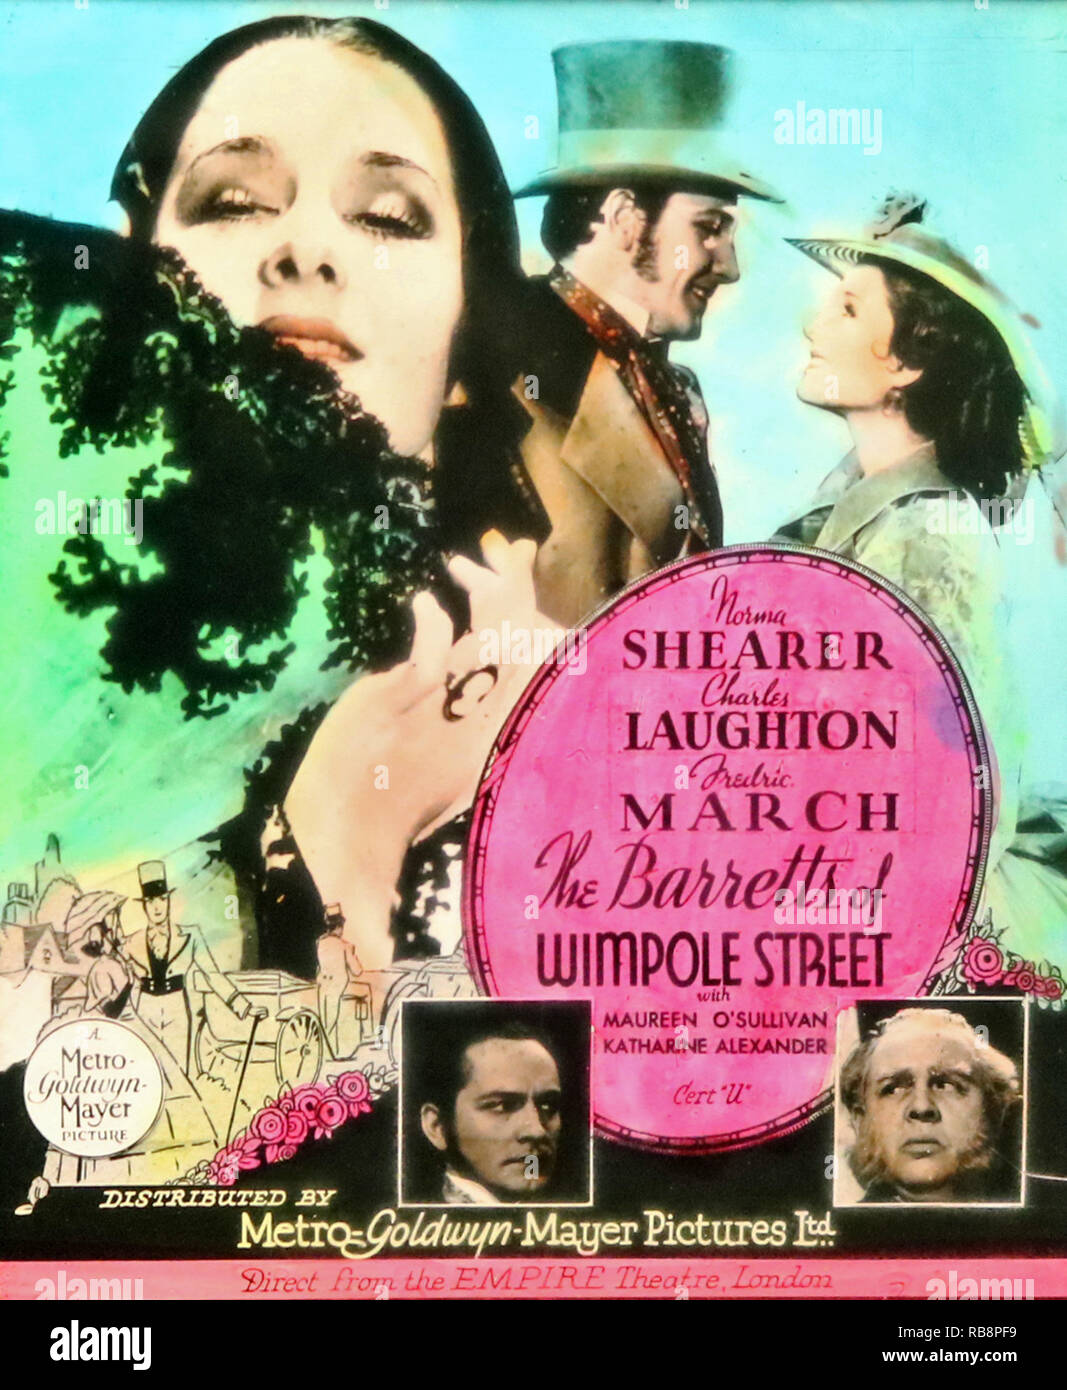 Charles Laughton 'The Barretts of Wimpole Street' movie advertisement - Stock Image